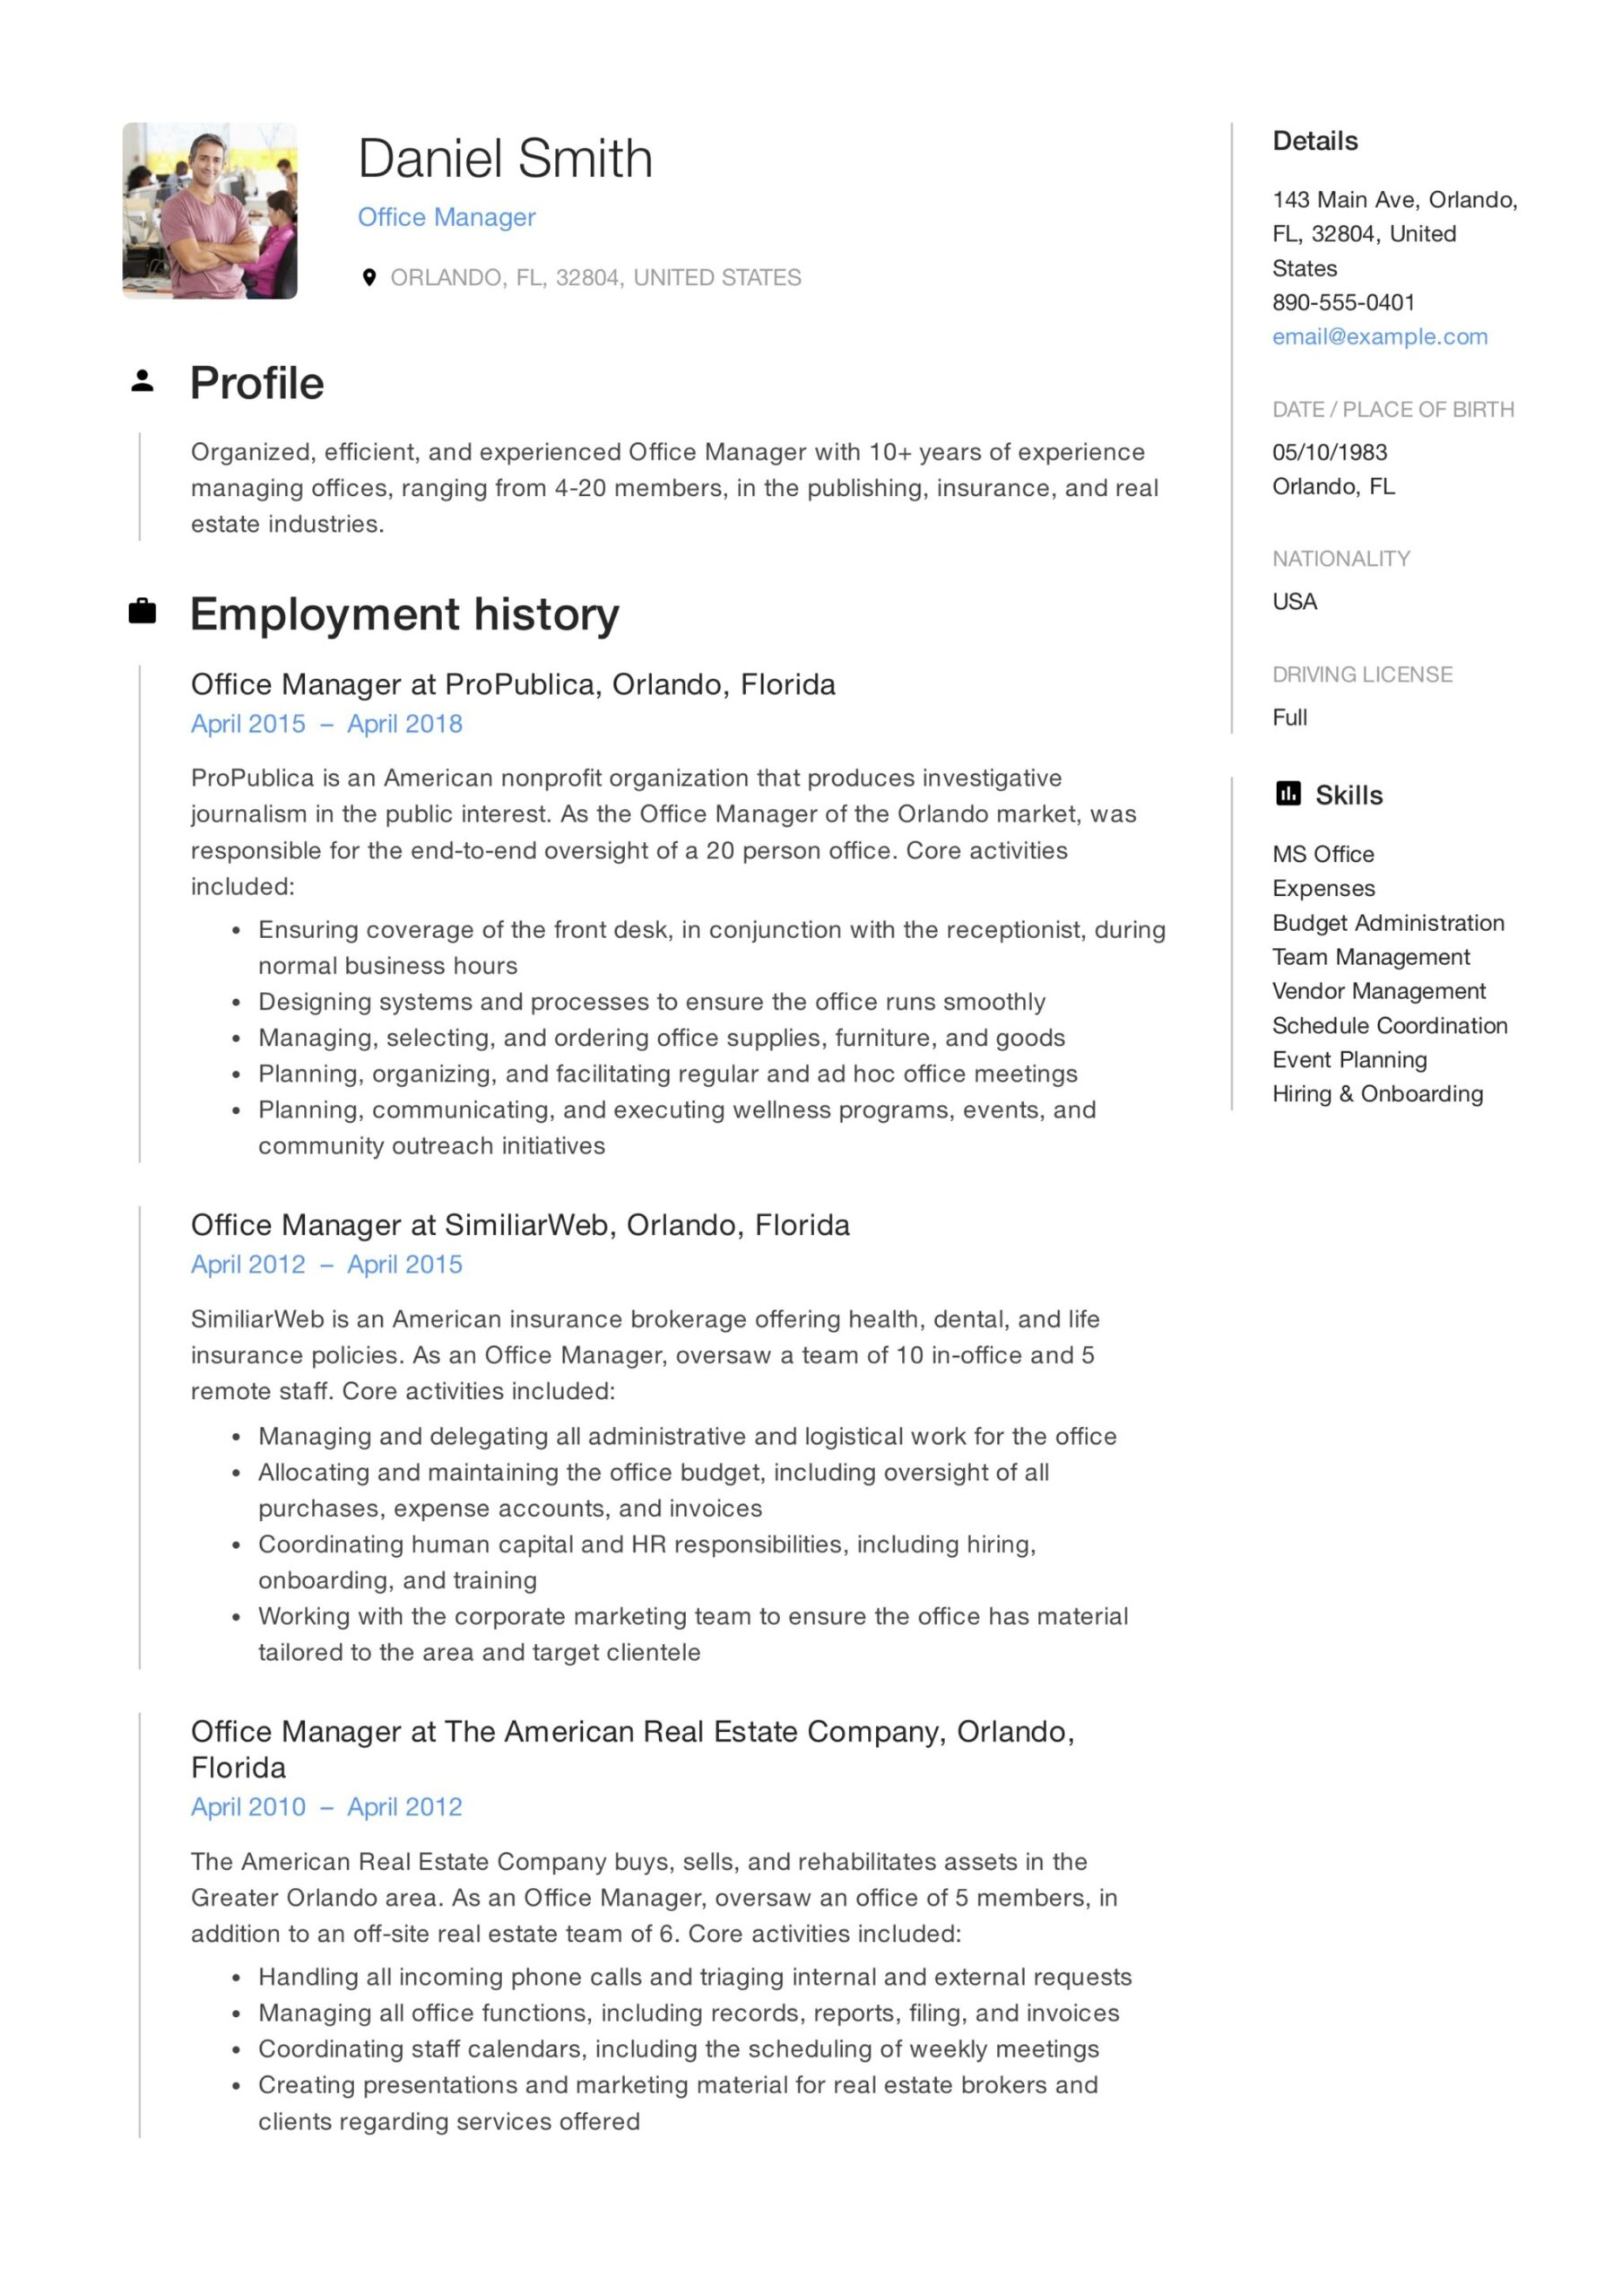 office manager resume guide samples pdf examples sample account executive keywords for Resume Office Manager Resume Examples 2019